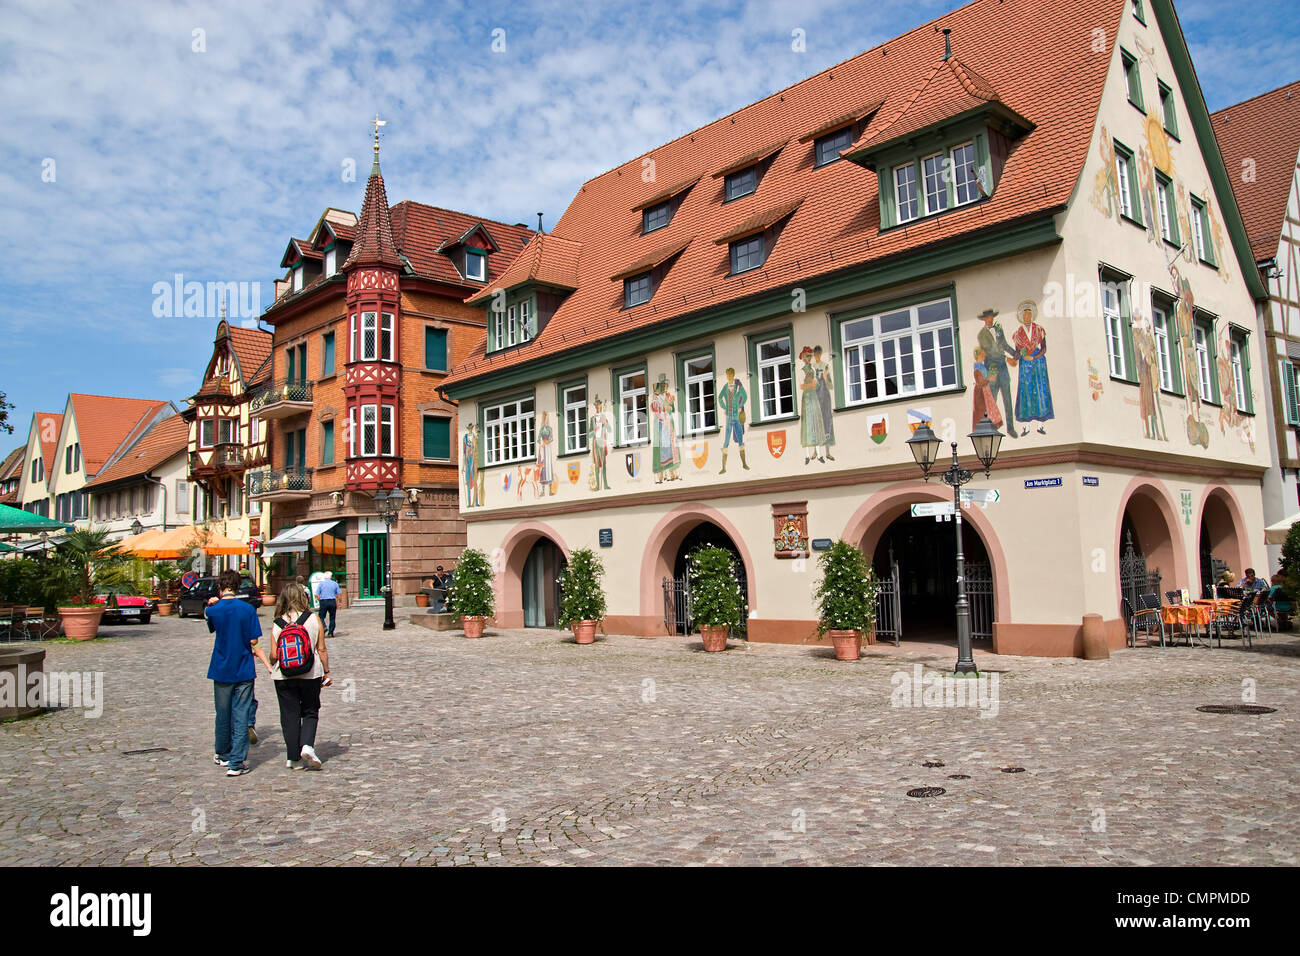 Marketplace in Haslach, baden-wurttemberg; , Germany - Stock Image